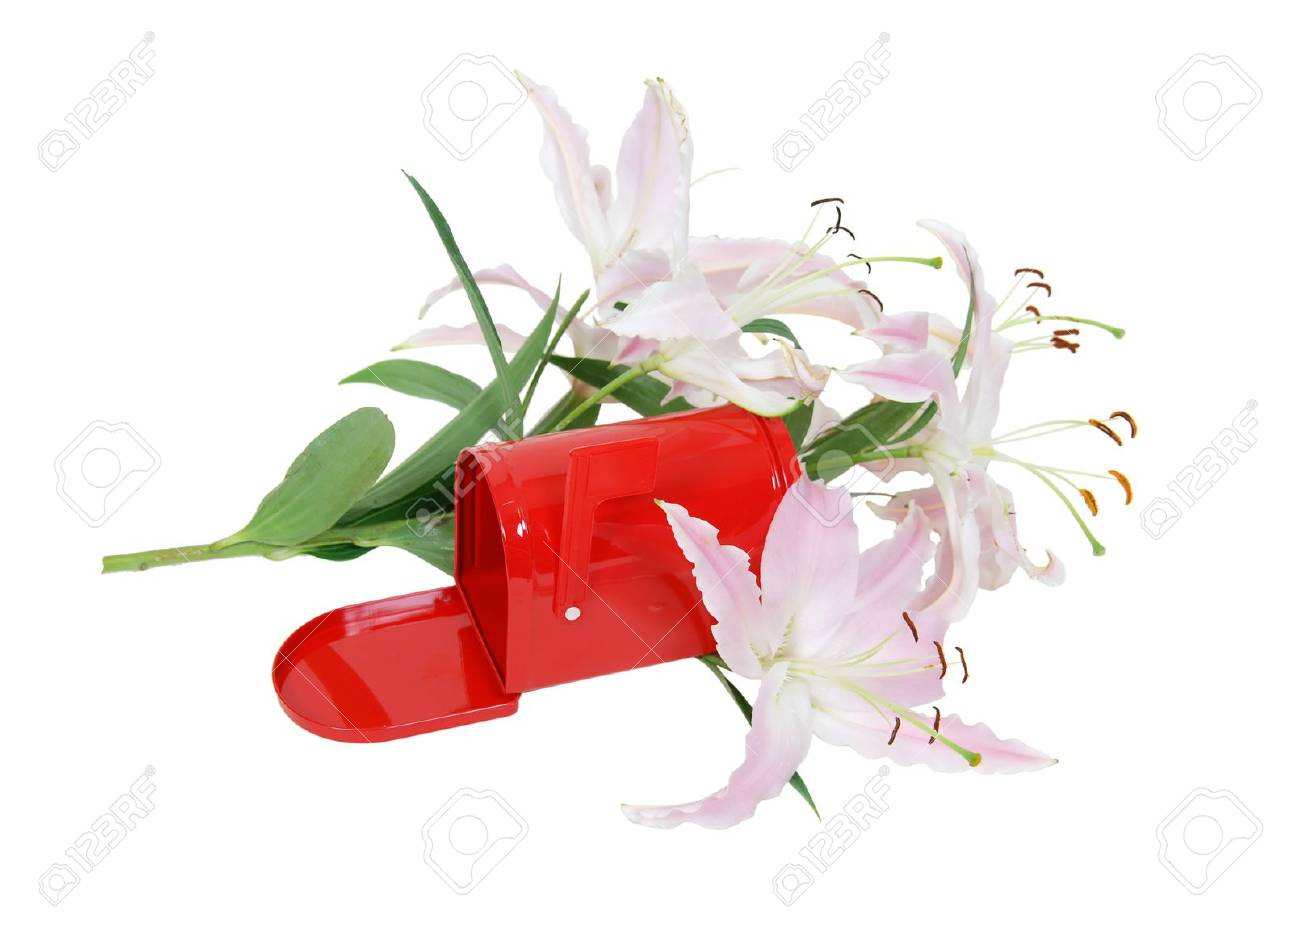 metal mailbox flag. Red Metal Mailbox With Signal Flag Amongst The White And Pink Lilies Stock Photo - 4871275 E